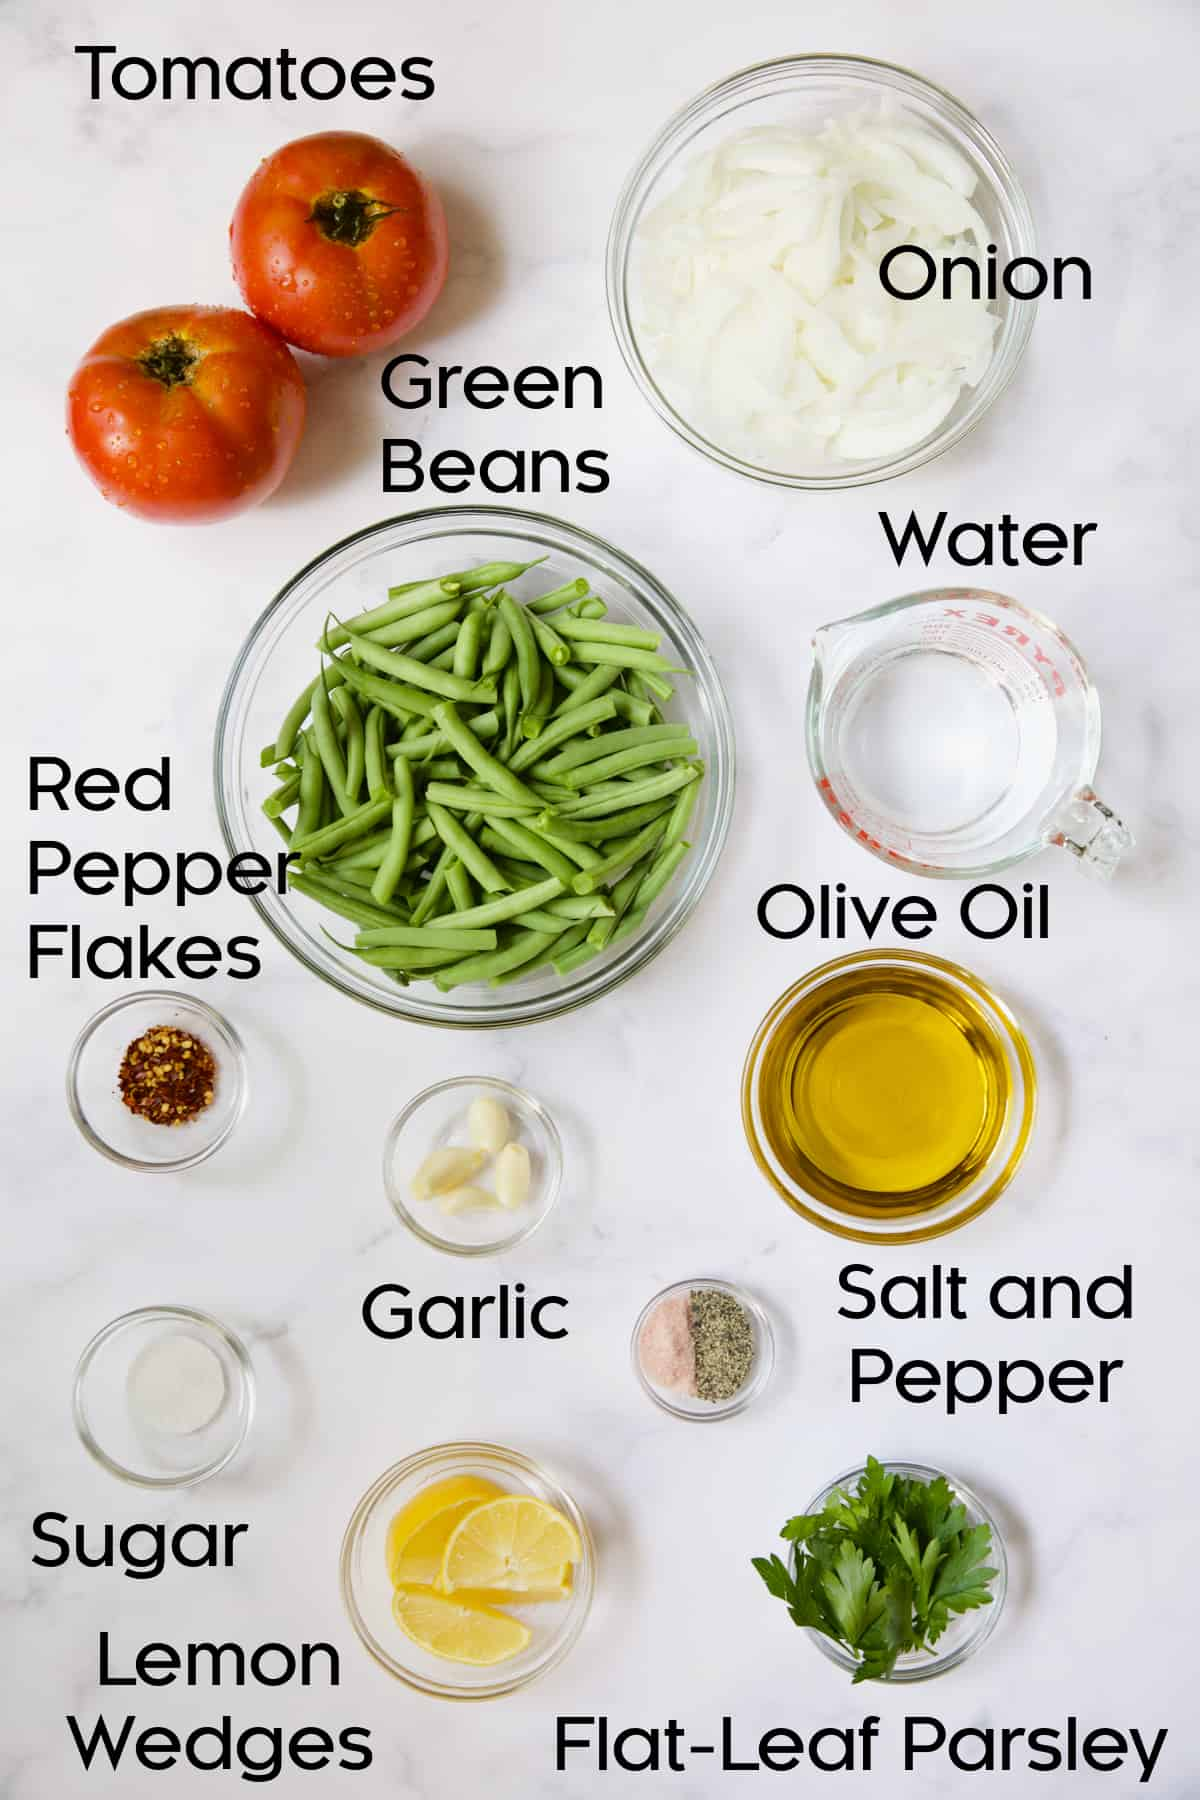 Ingredients for Mediterranean Braised Green Beans with Tomatoes in glass bowls.